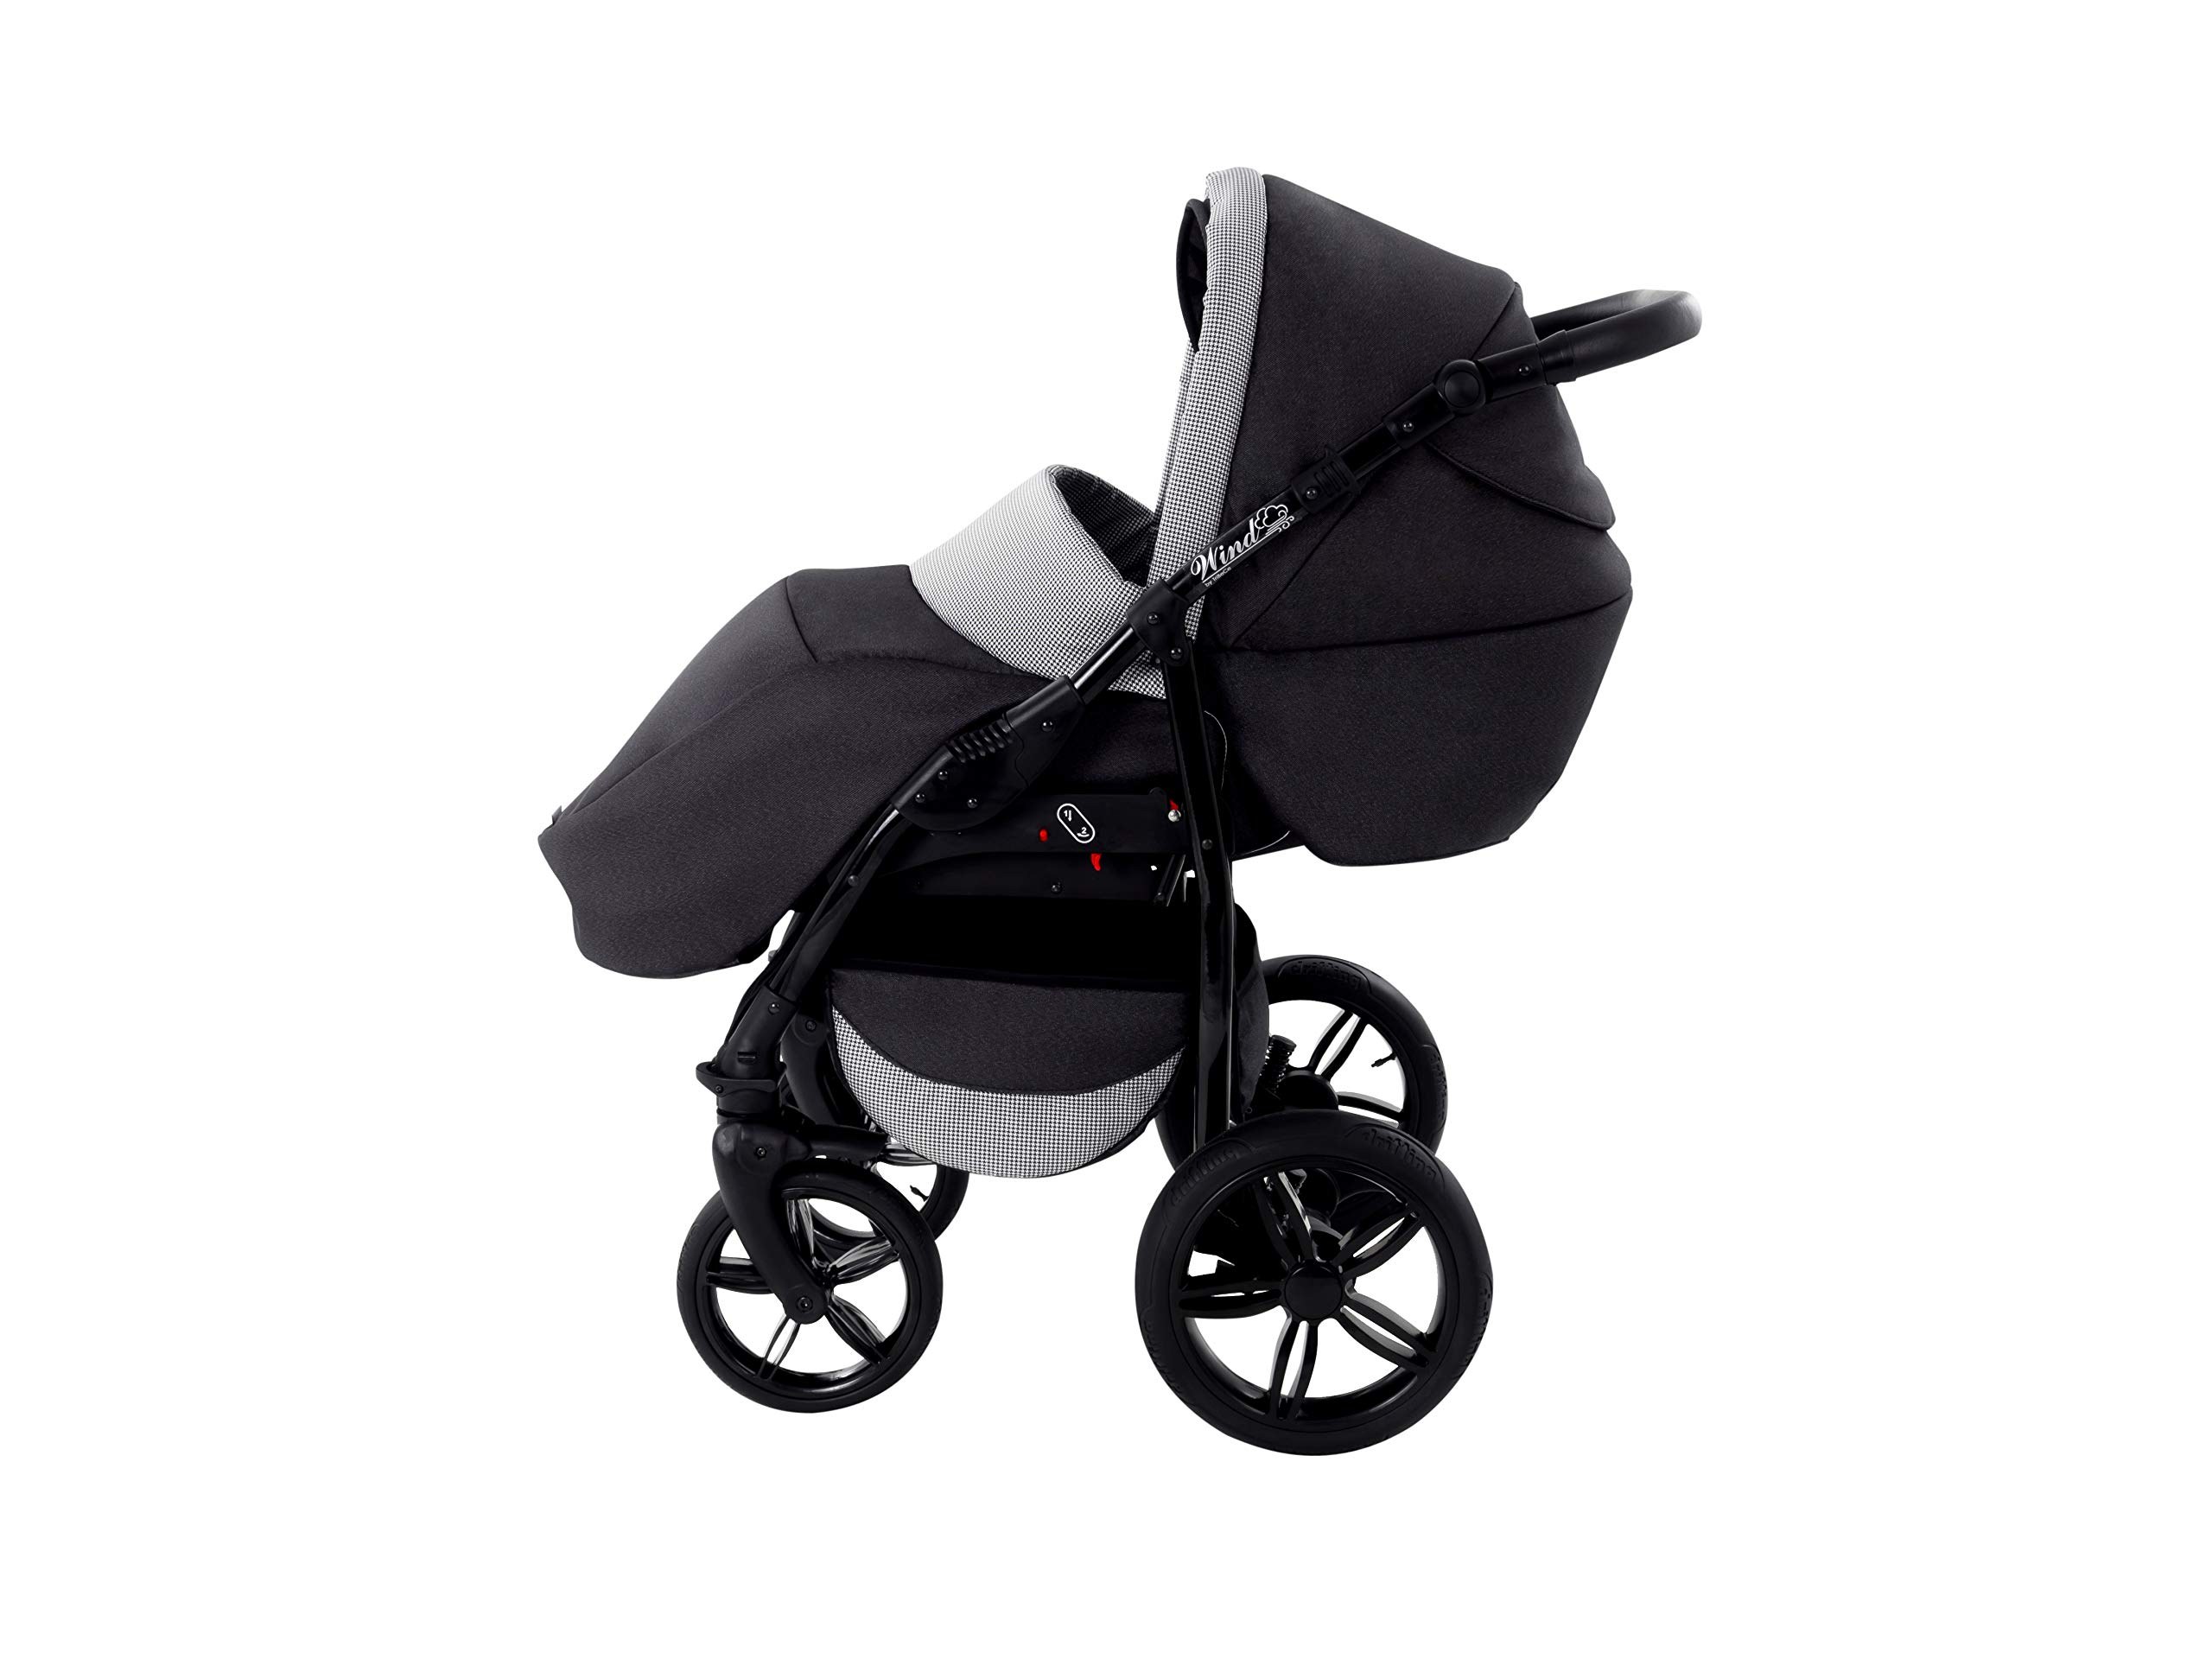 Baby Pram Zeo Wind 3in1 Set - All You Need! carrycot Gondola Buggy Sport Part Pushchair car seat (54) Zeo 3 in 1 combination stroller complete set, with reversible seat units to the buggy, child car seat or baby carriage The baby carriage is suitable for babies from 0 months to 3 years (0-15 kg) Has 360 ° swiveling wheels, four-fold suspension, four-stage backrest, five-position adjustable footrest and a five-point safety belt 7